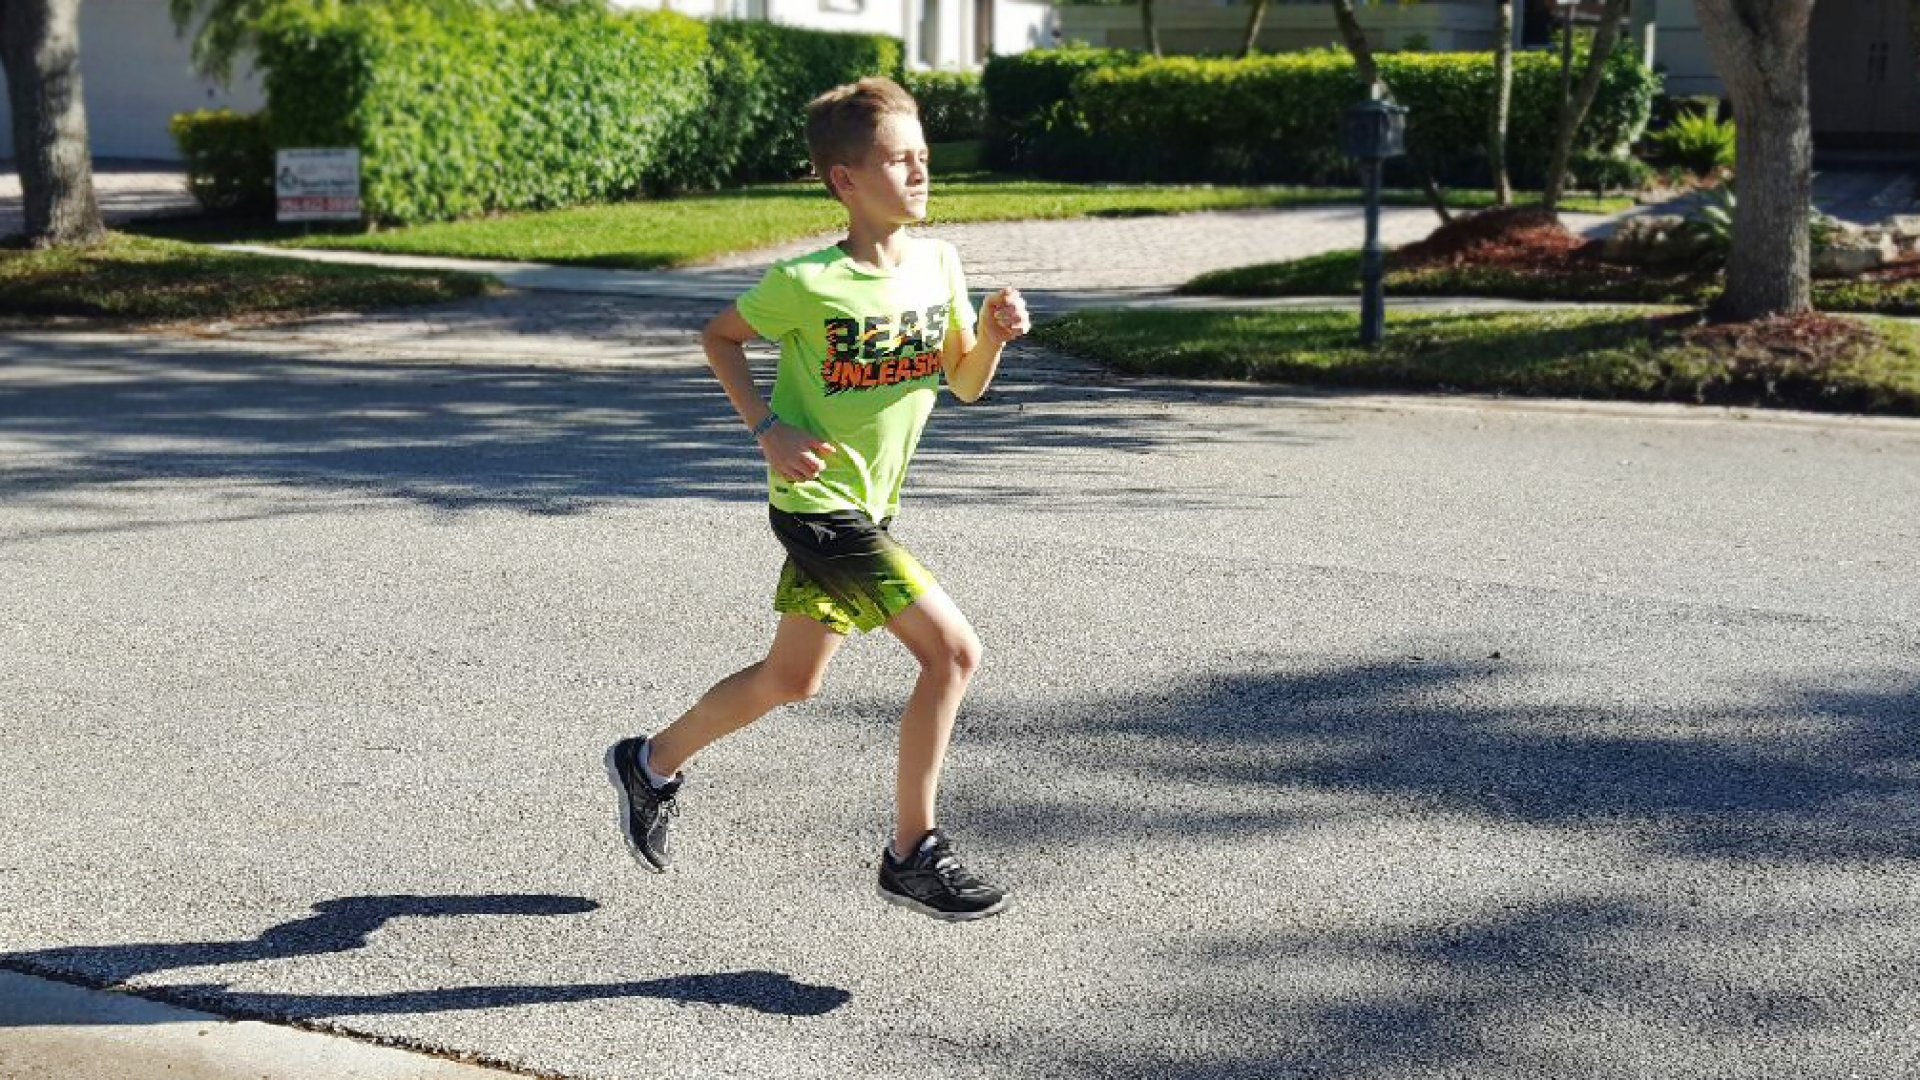 Adrian Gandara, age 11, is more than halfway through his goal of running a 5k every day for six months.